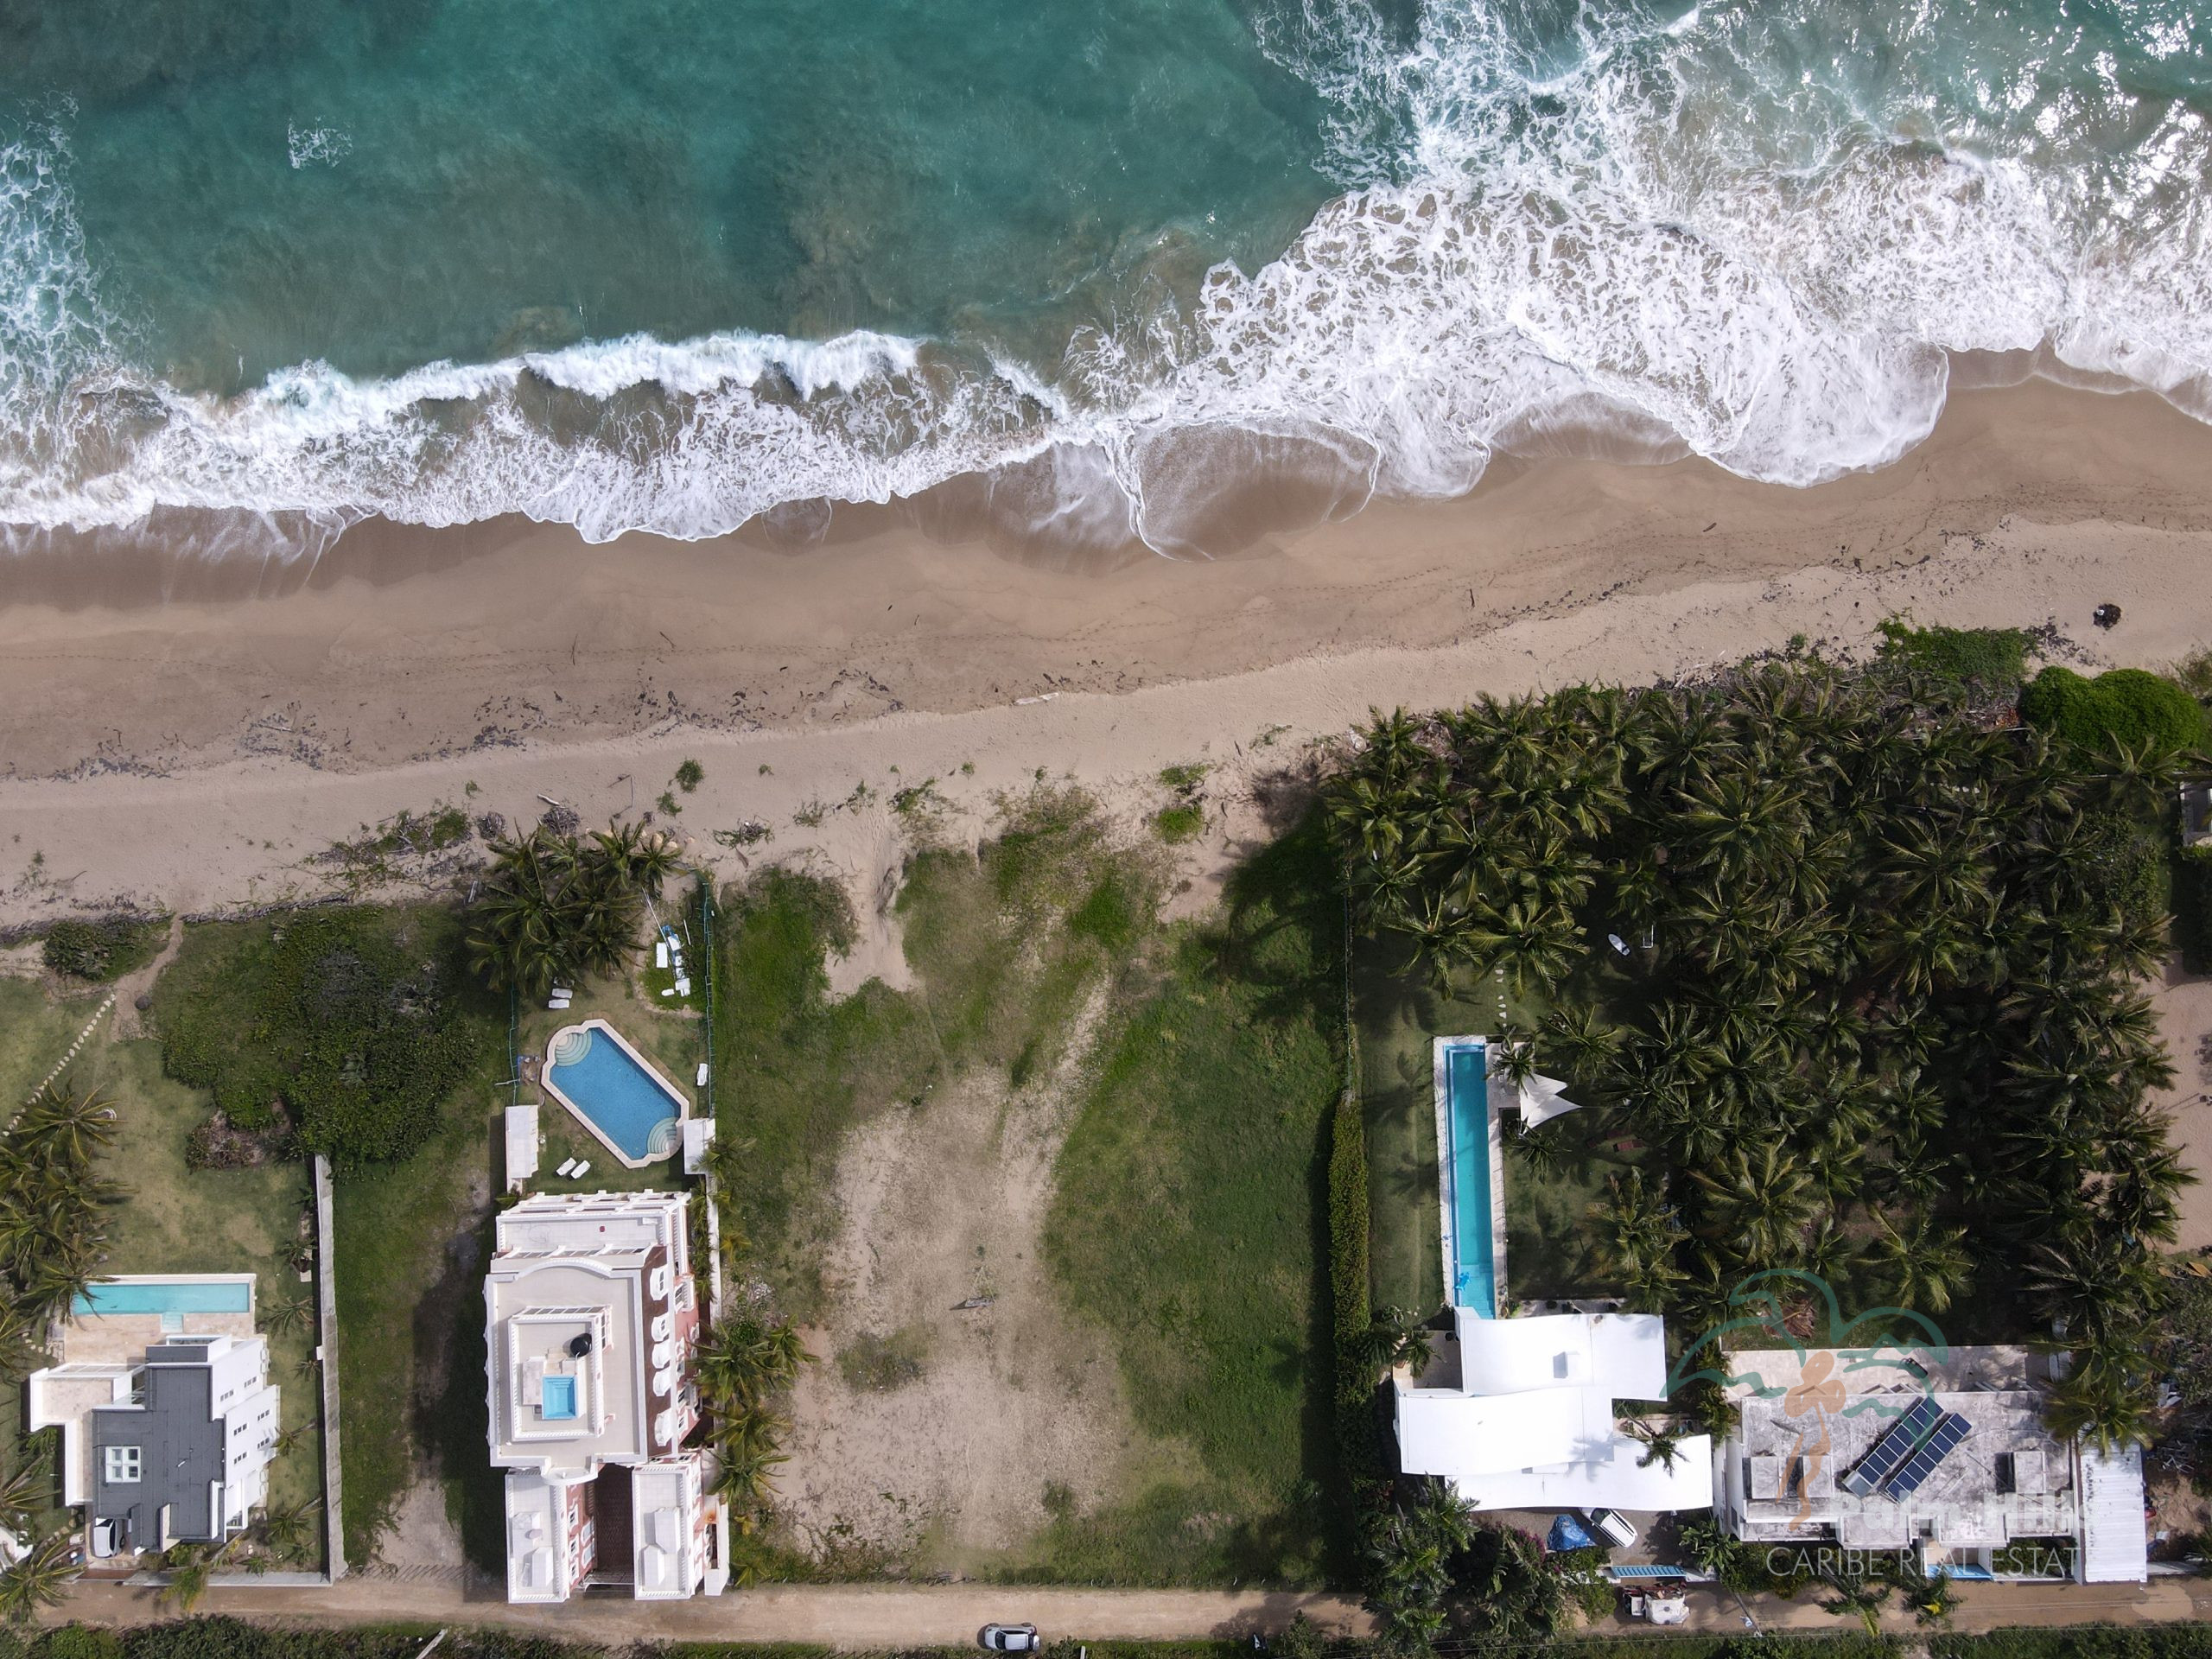 Terreno frente de Kite Beach Cabarete